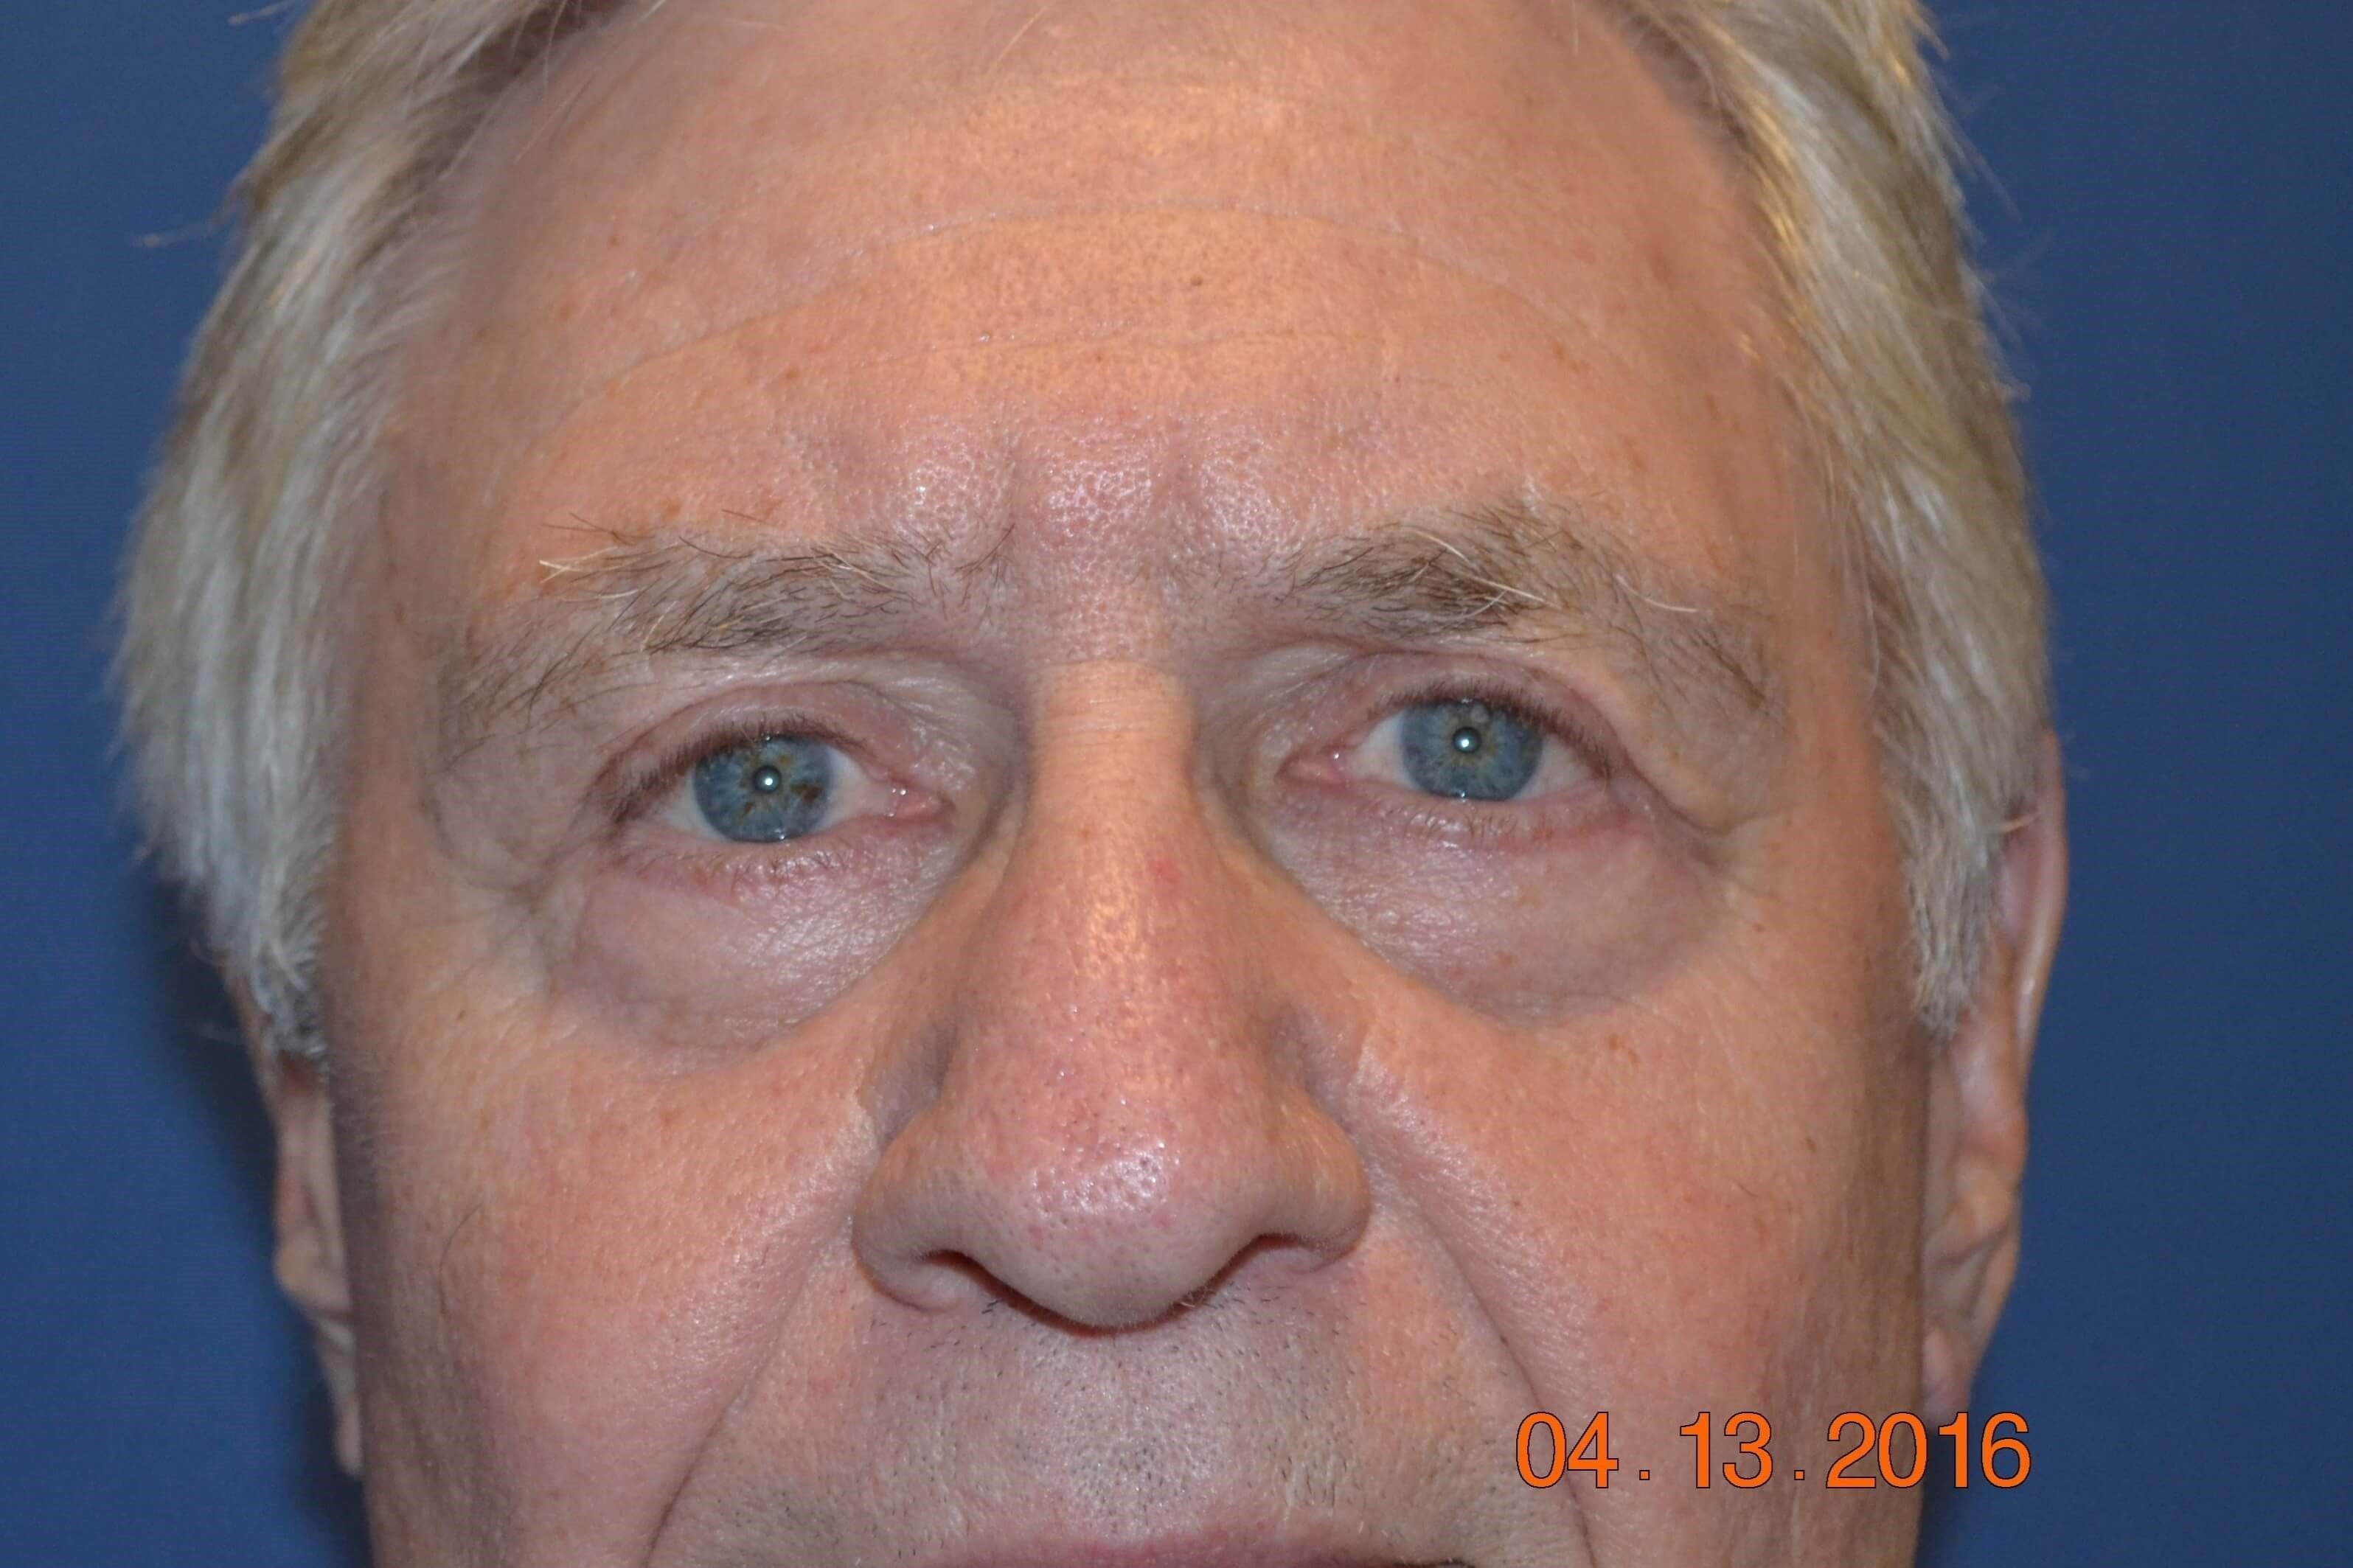 Four-Lid Blepharoplasty After